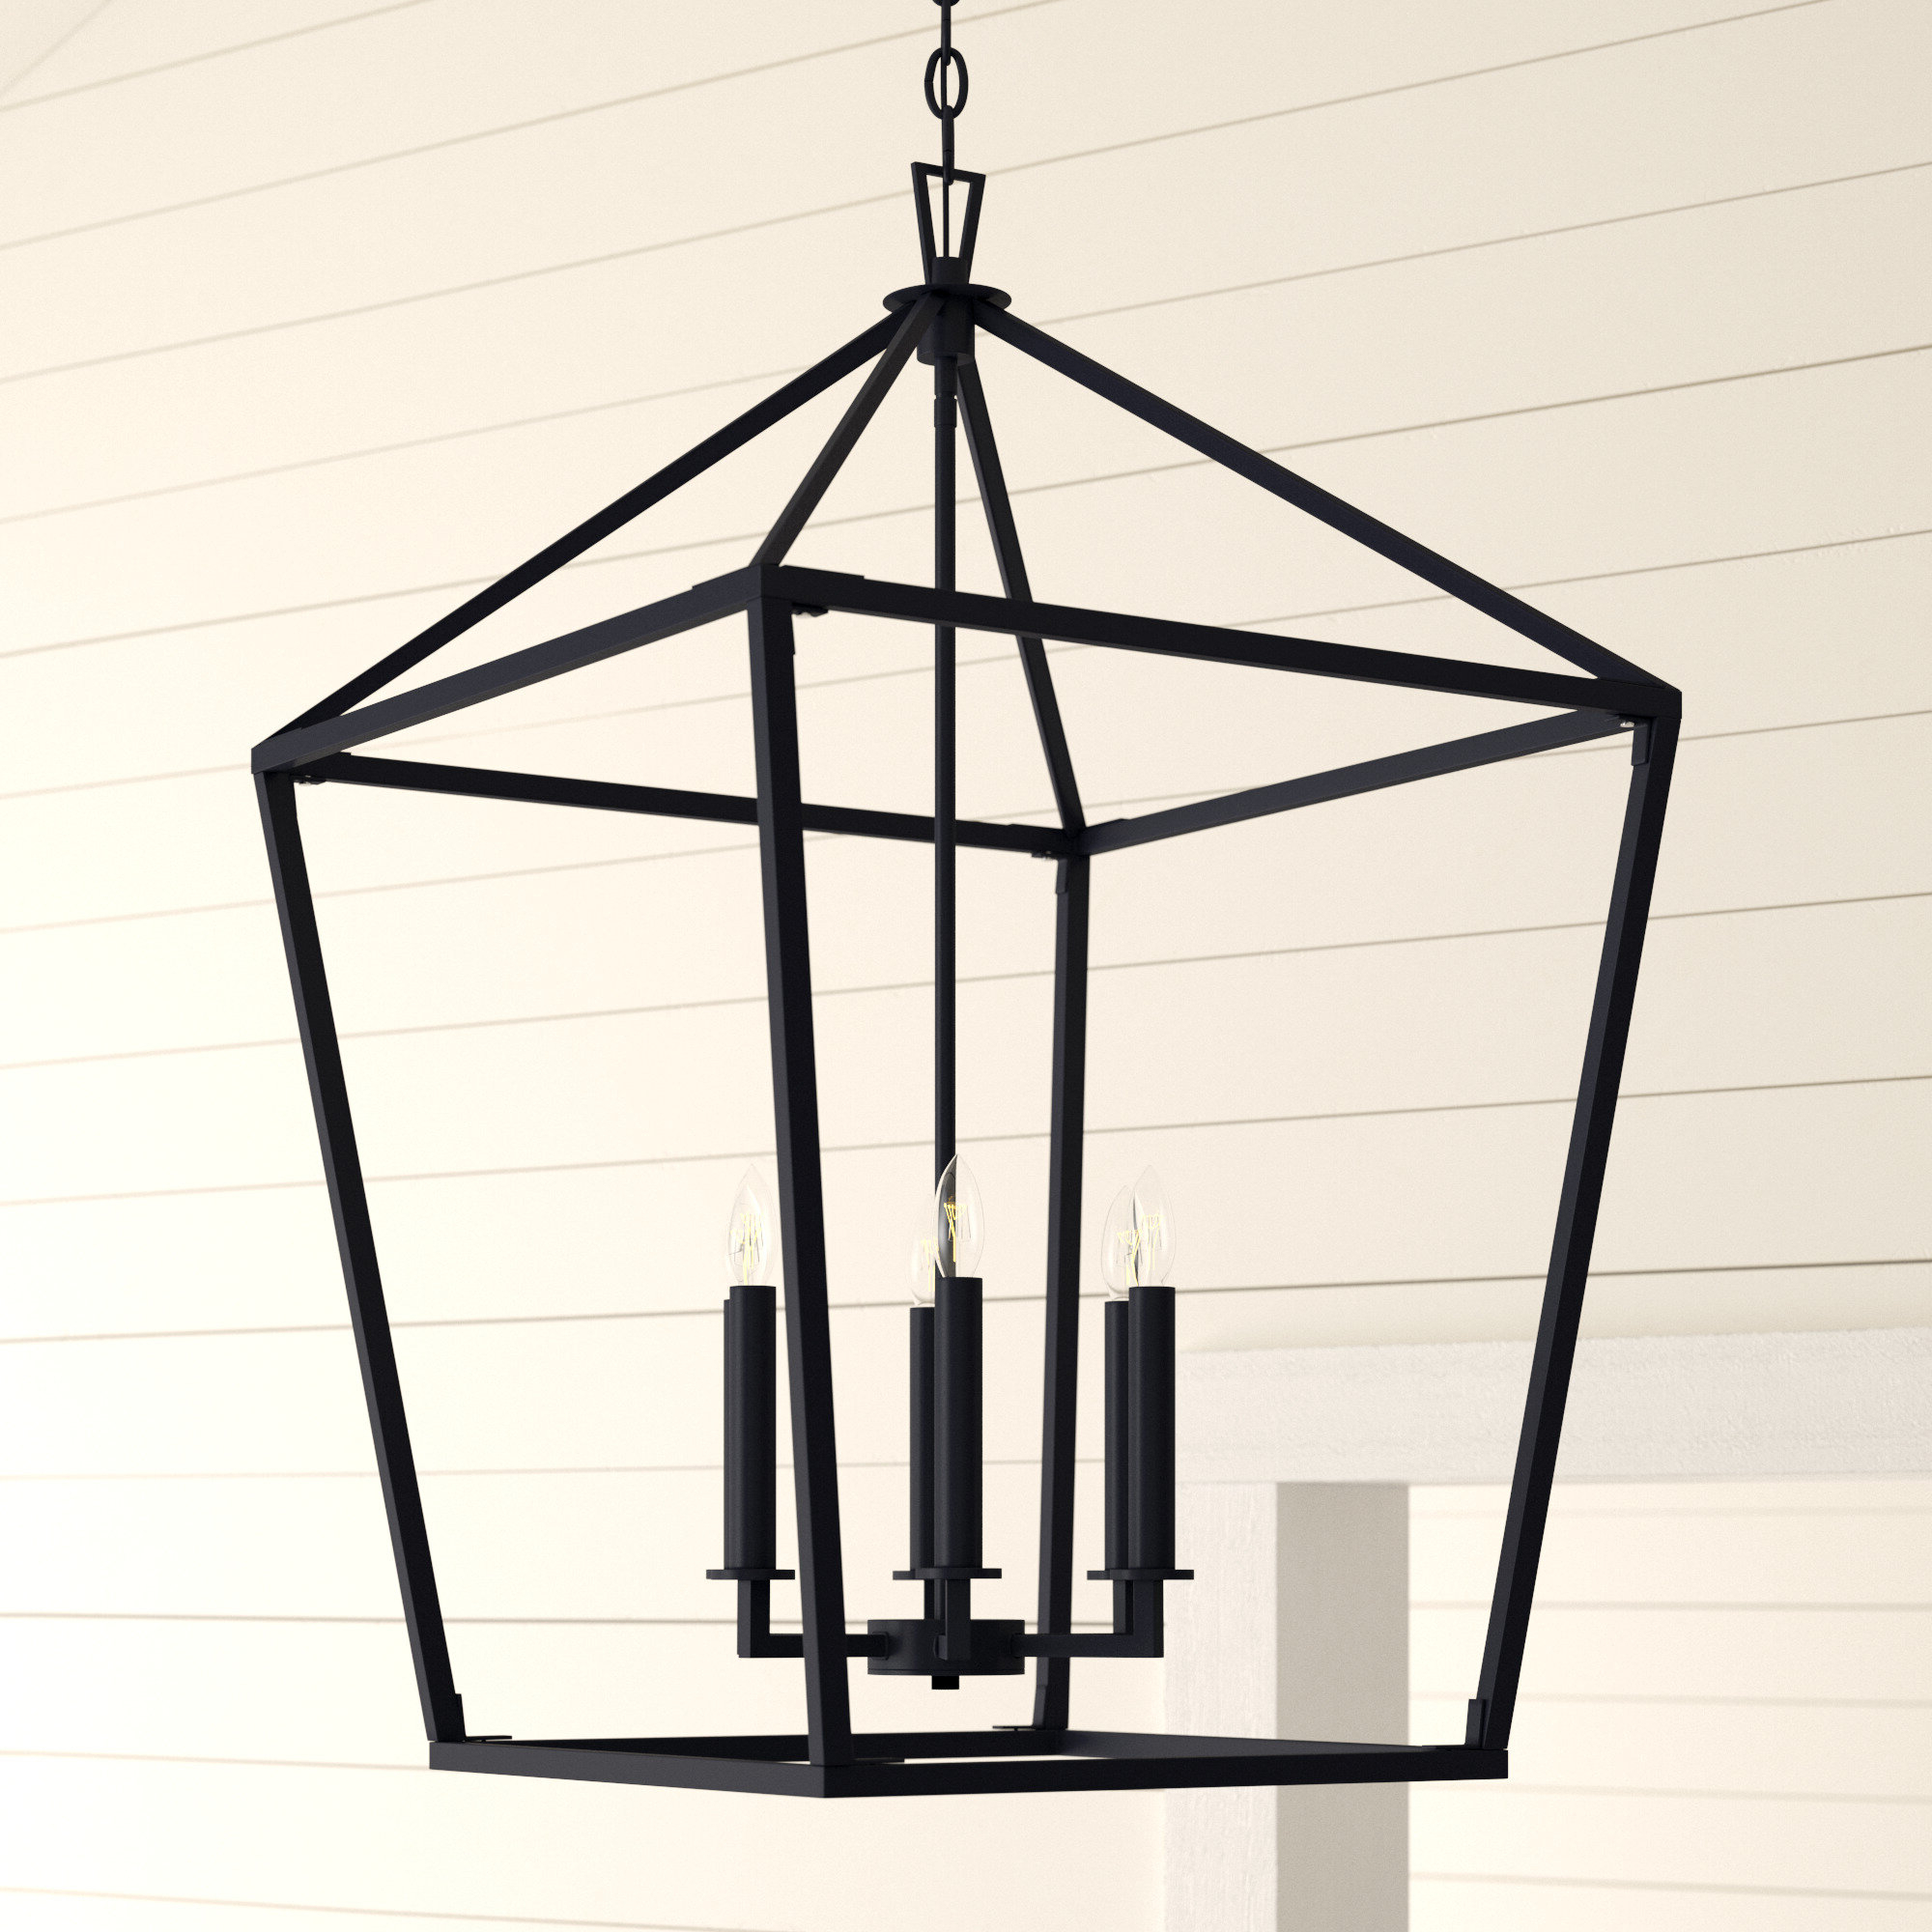 Israel 6-Light Lantern Geometric Pendant throughout Trendy William 4-Light Lantern Square / Rectangle Pendants